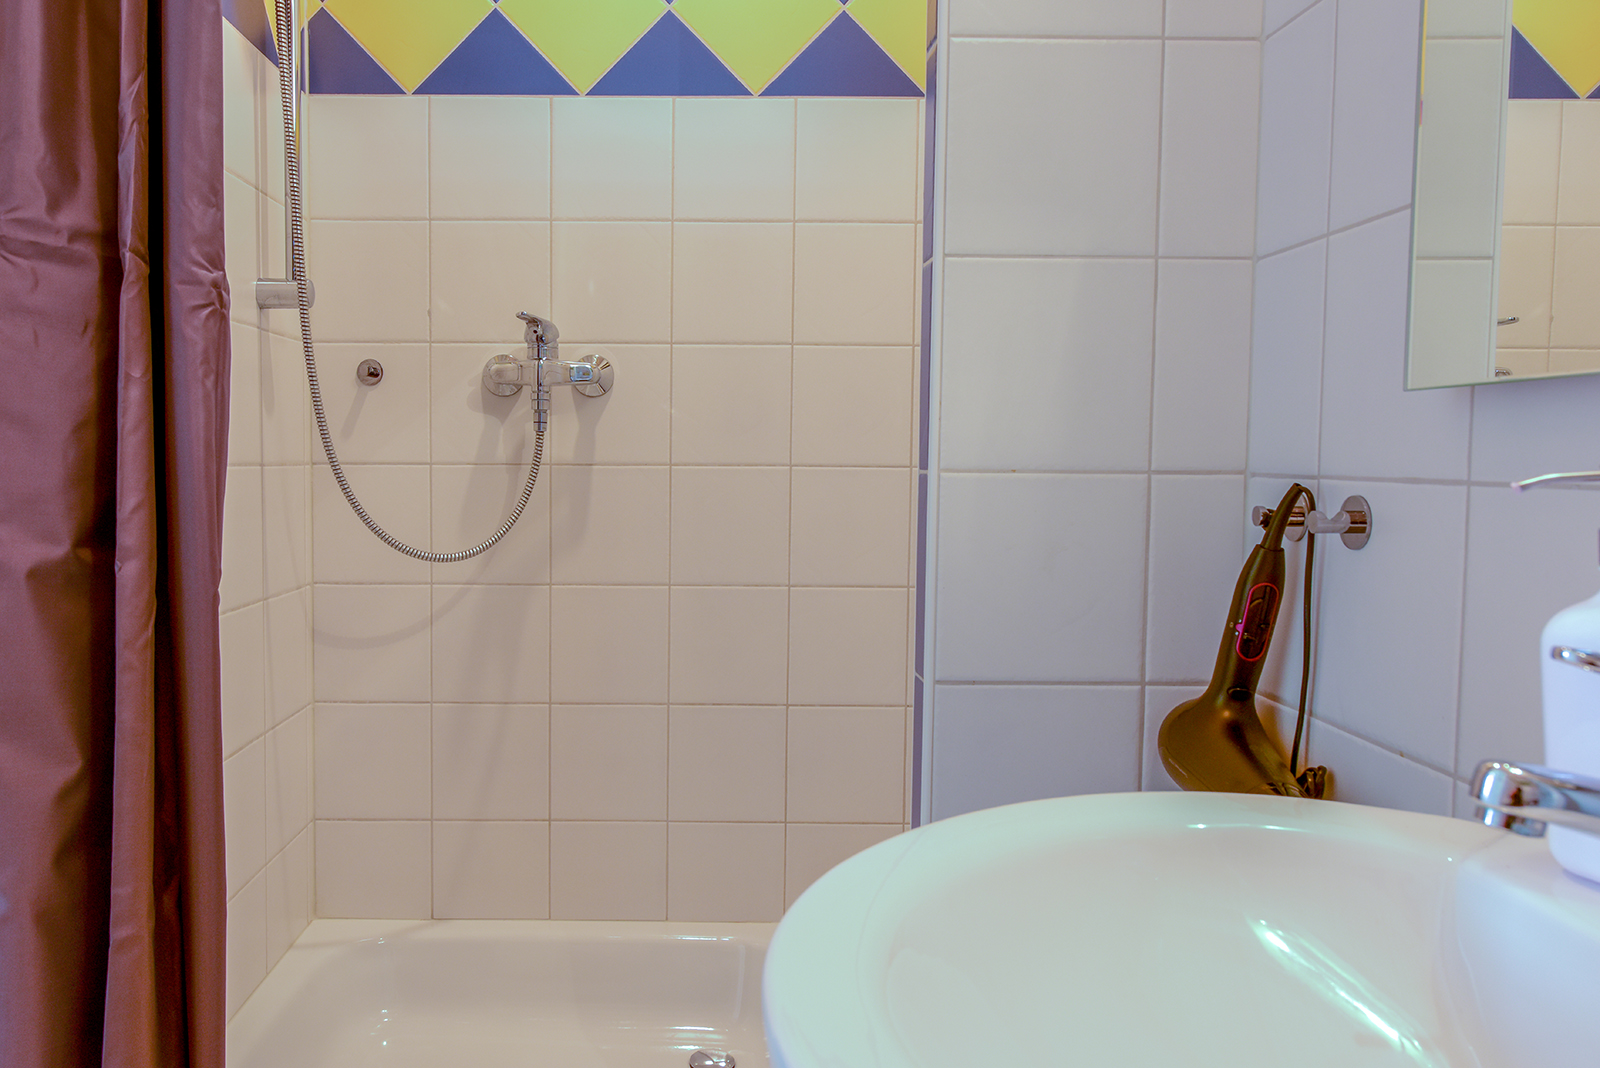 Holiday apartments on Lake Constance: Seeblüte - Bathroom